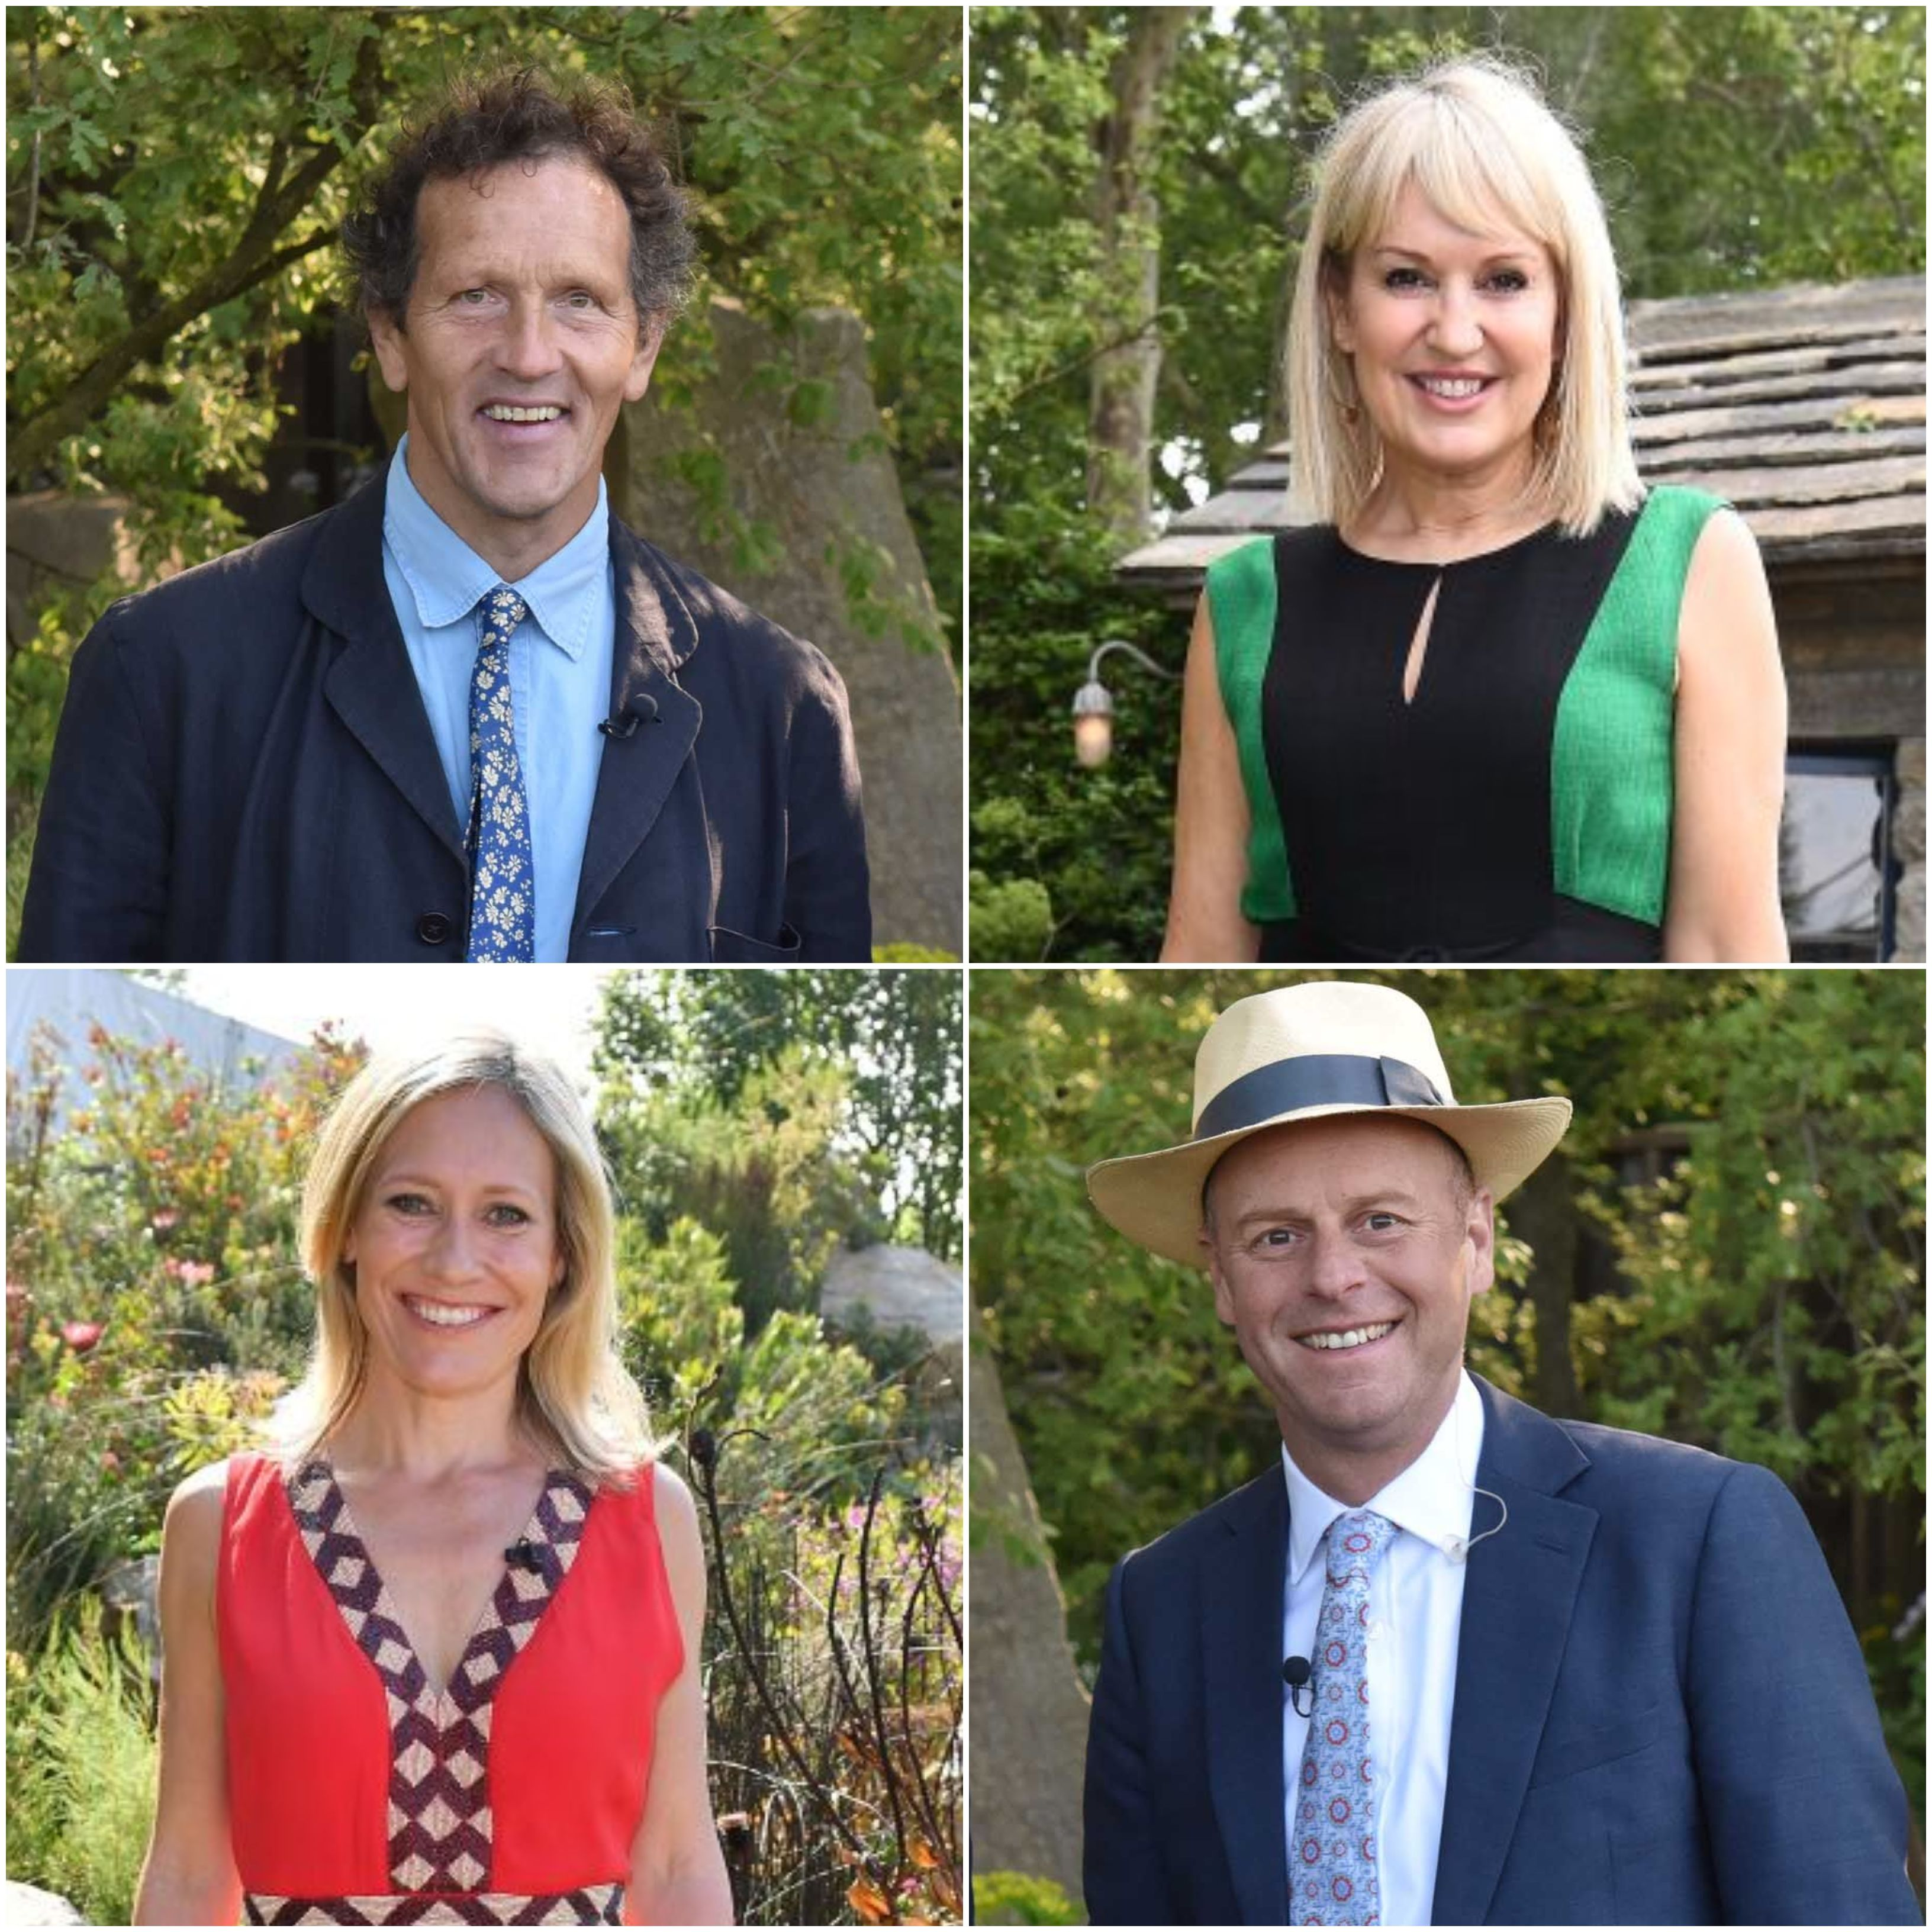 Chelsea Flower Show 2020 presenter line-up includes Nicki Chapman, Monty Don, Joe Swift and Sophie Raworth